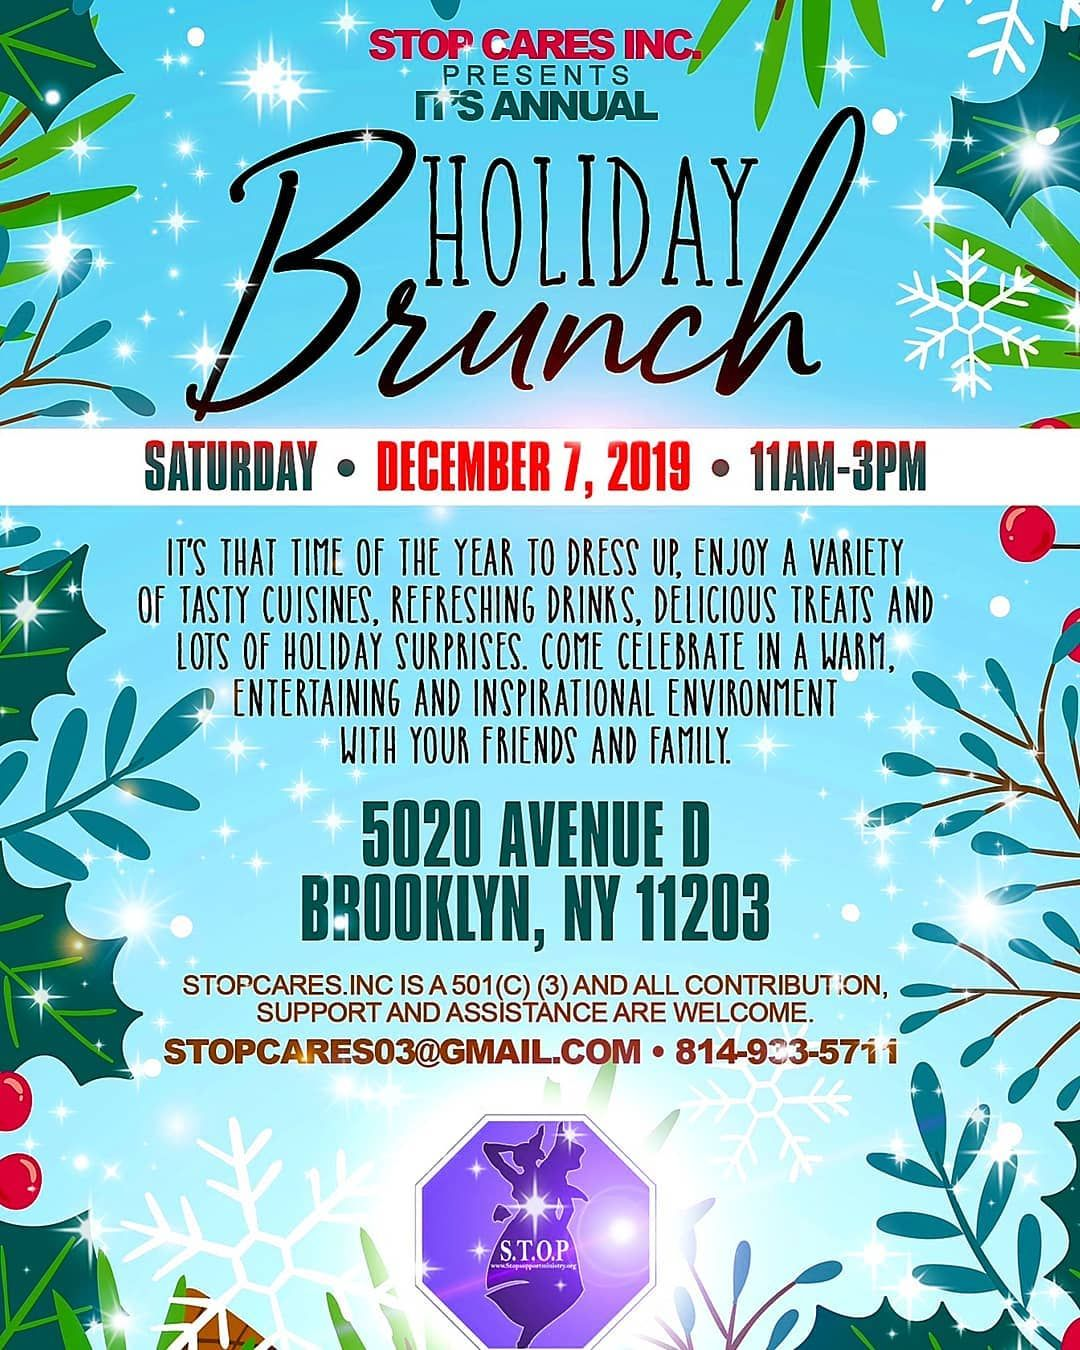 Stop Cares Inc Presents It S Annual Holiday Brunch Of 2019 Stop Cares Inc Presents It S Annual Holiday Brunch Refreshing Drinks Holiday Brunch Entertaining